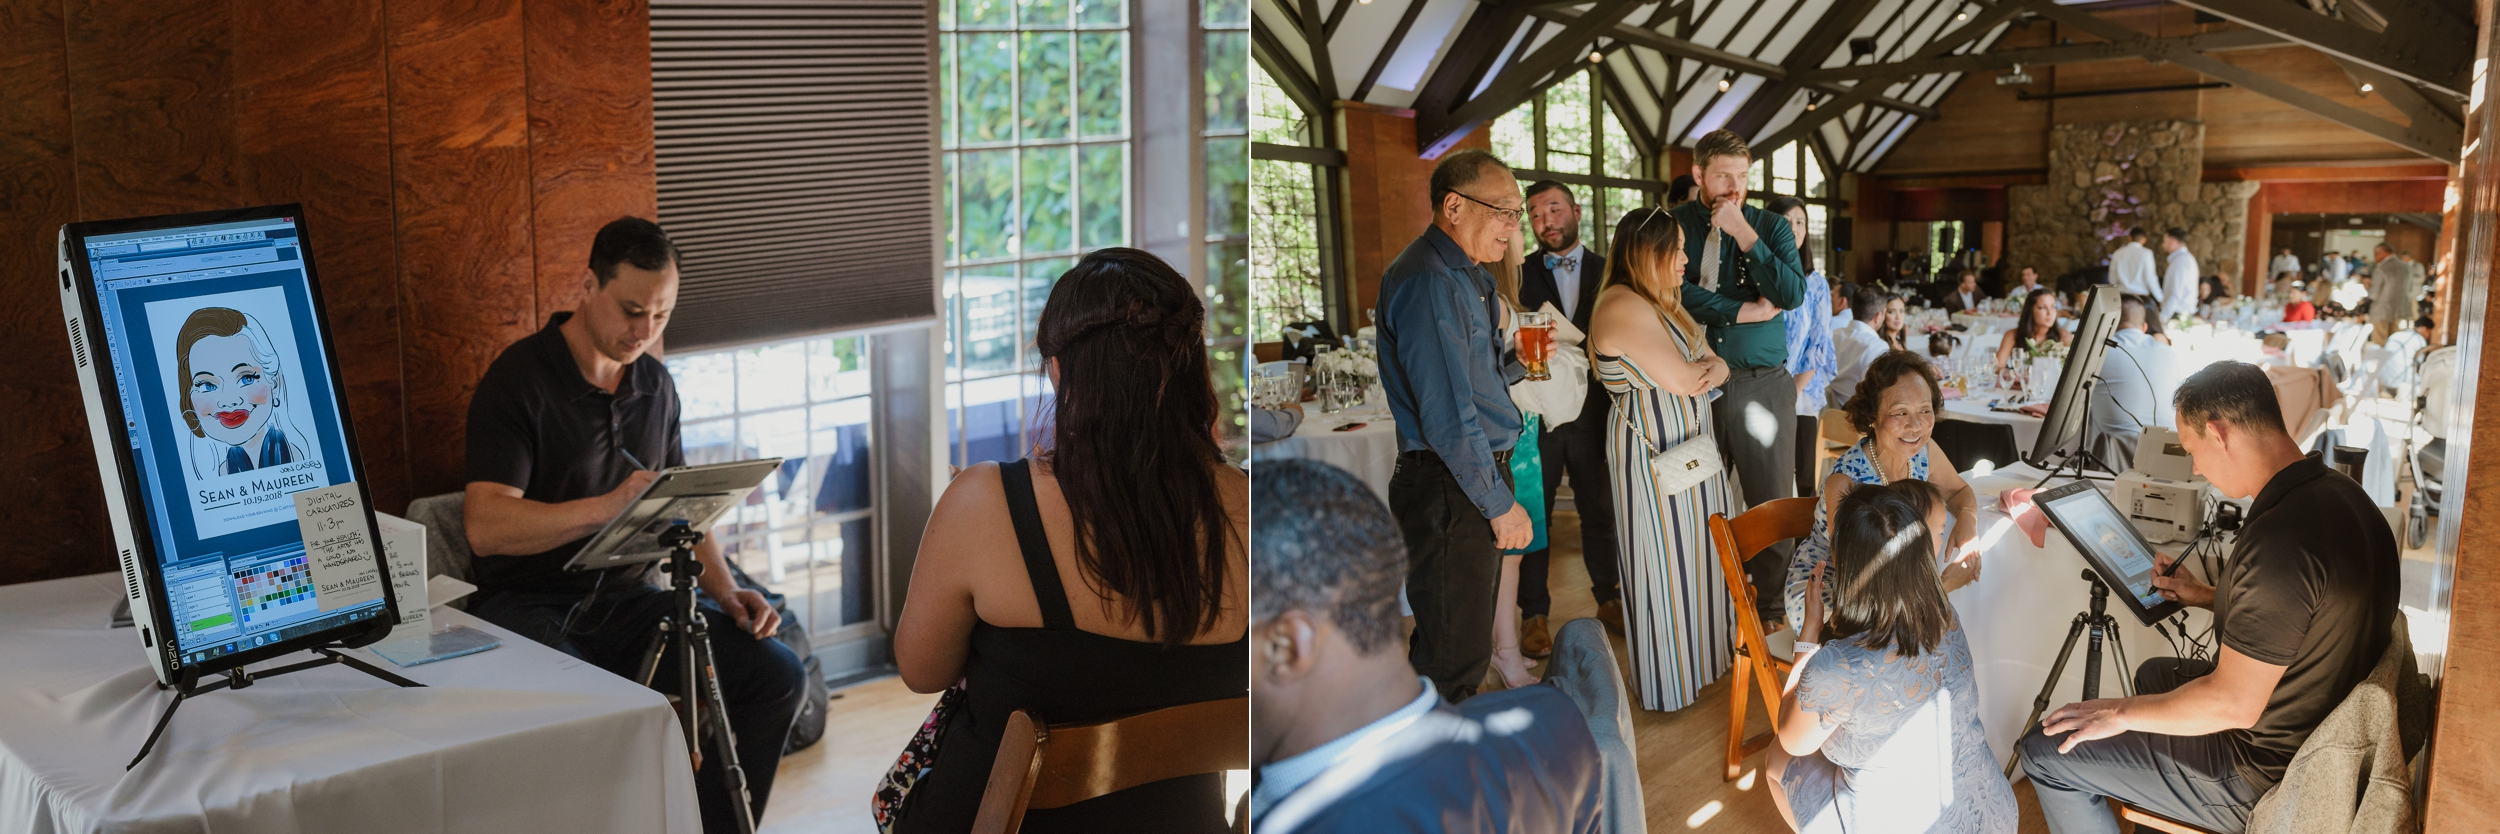 48-berkeley-tilden-park-brazilian-room-wedding-vivianchen-357_WEB.jpg